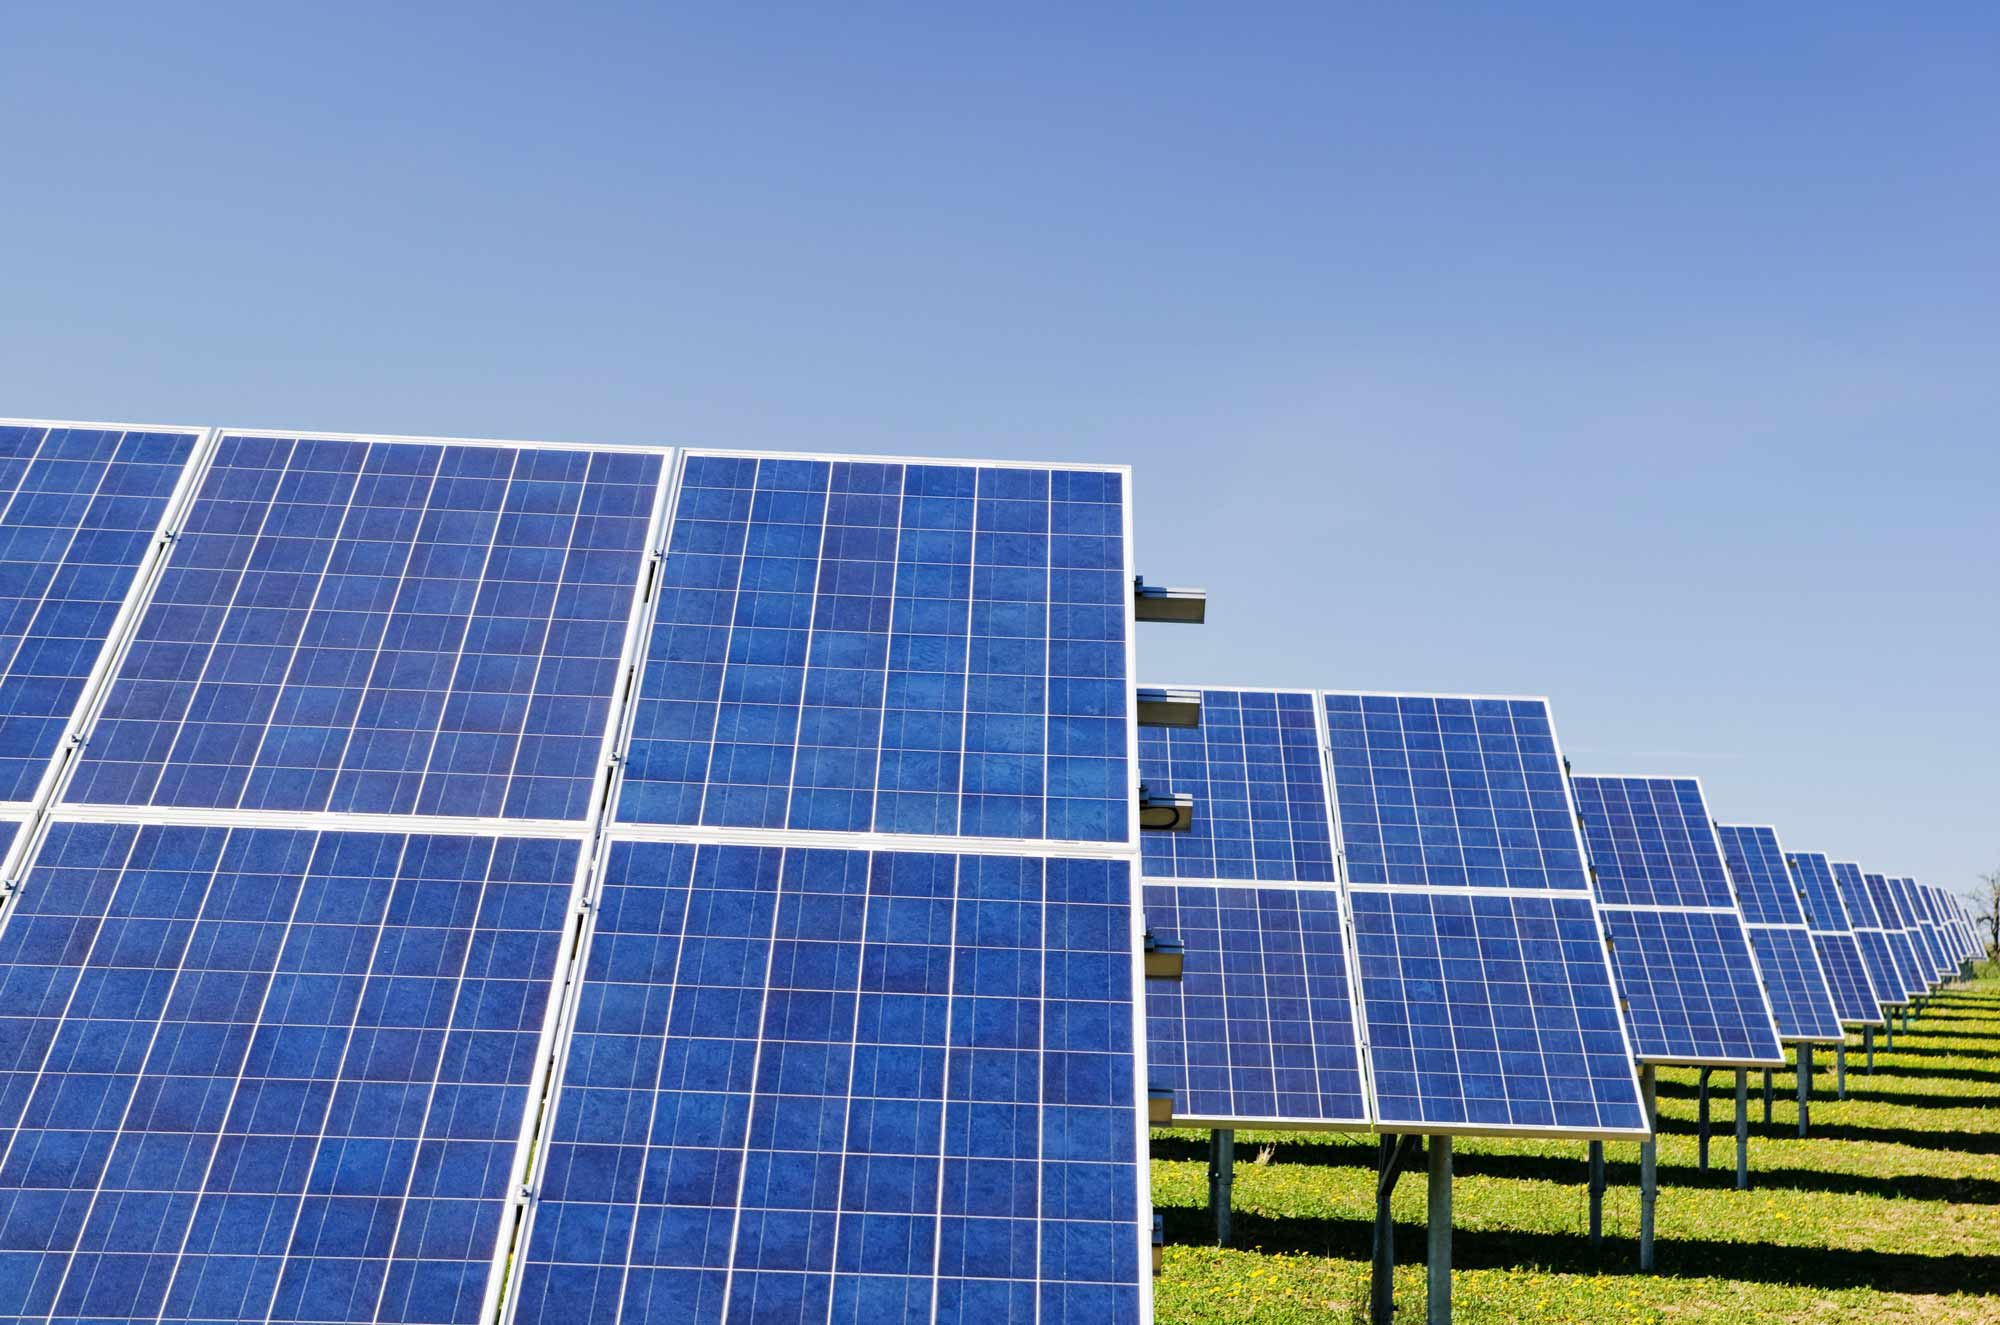 Commercial Ground Mount Solar Systems: The Basics